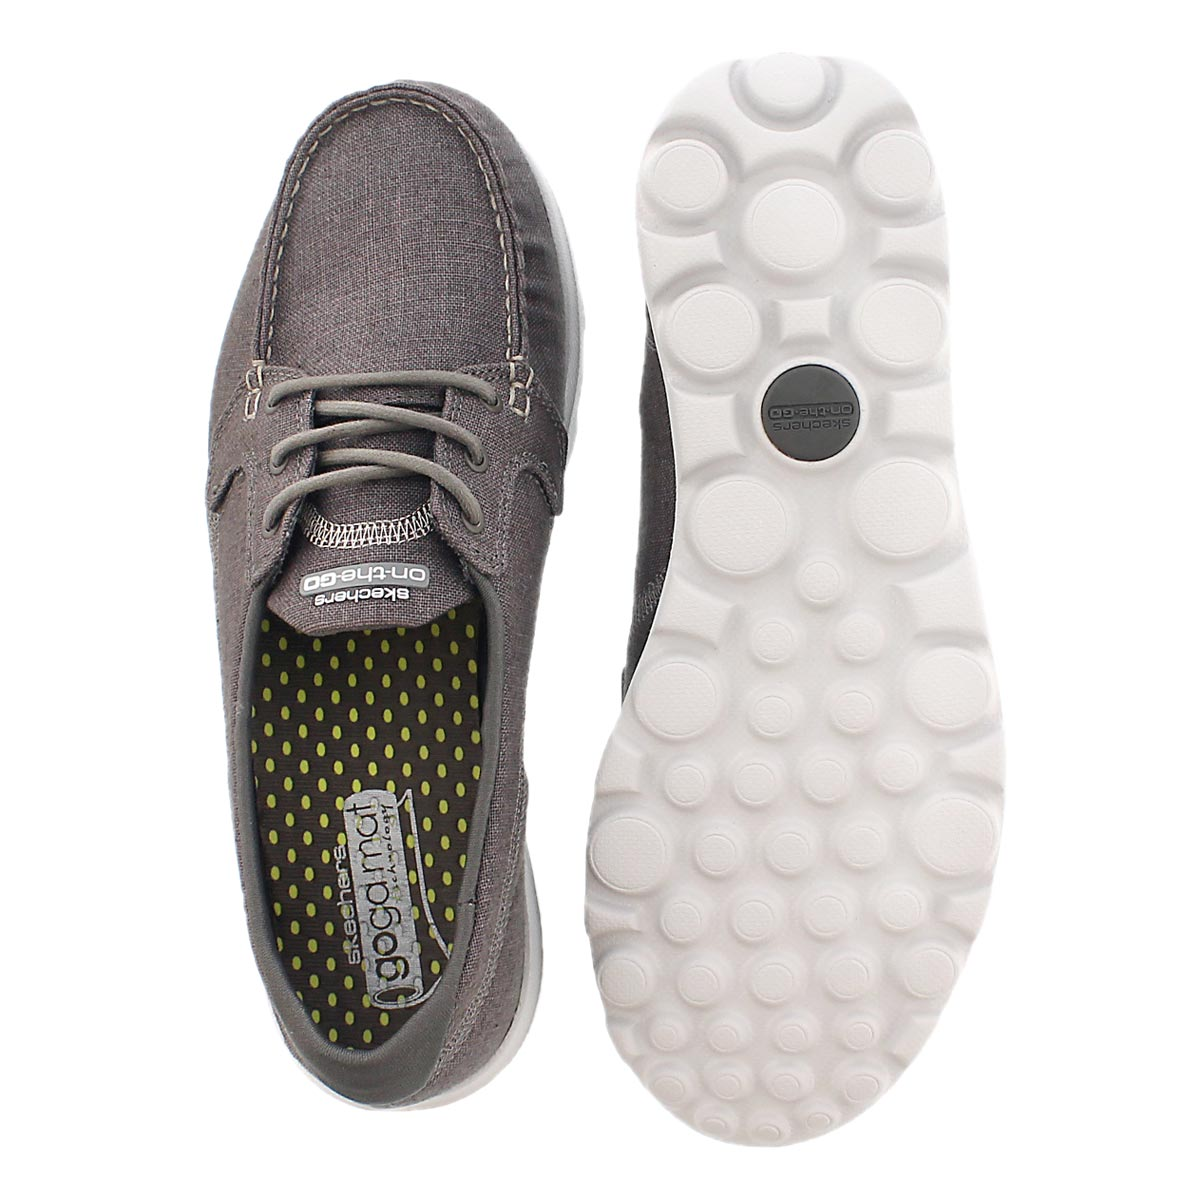 Mns On-The-GO Continental char boat shoe